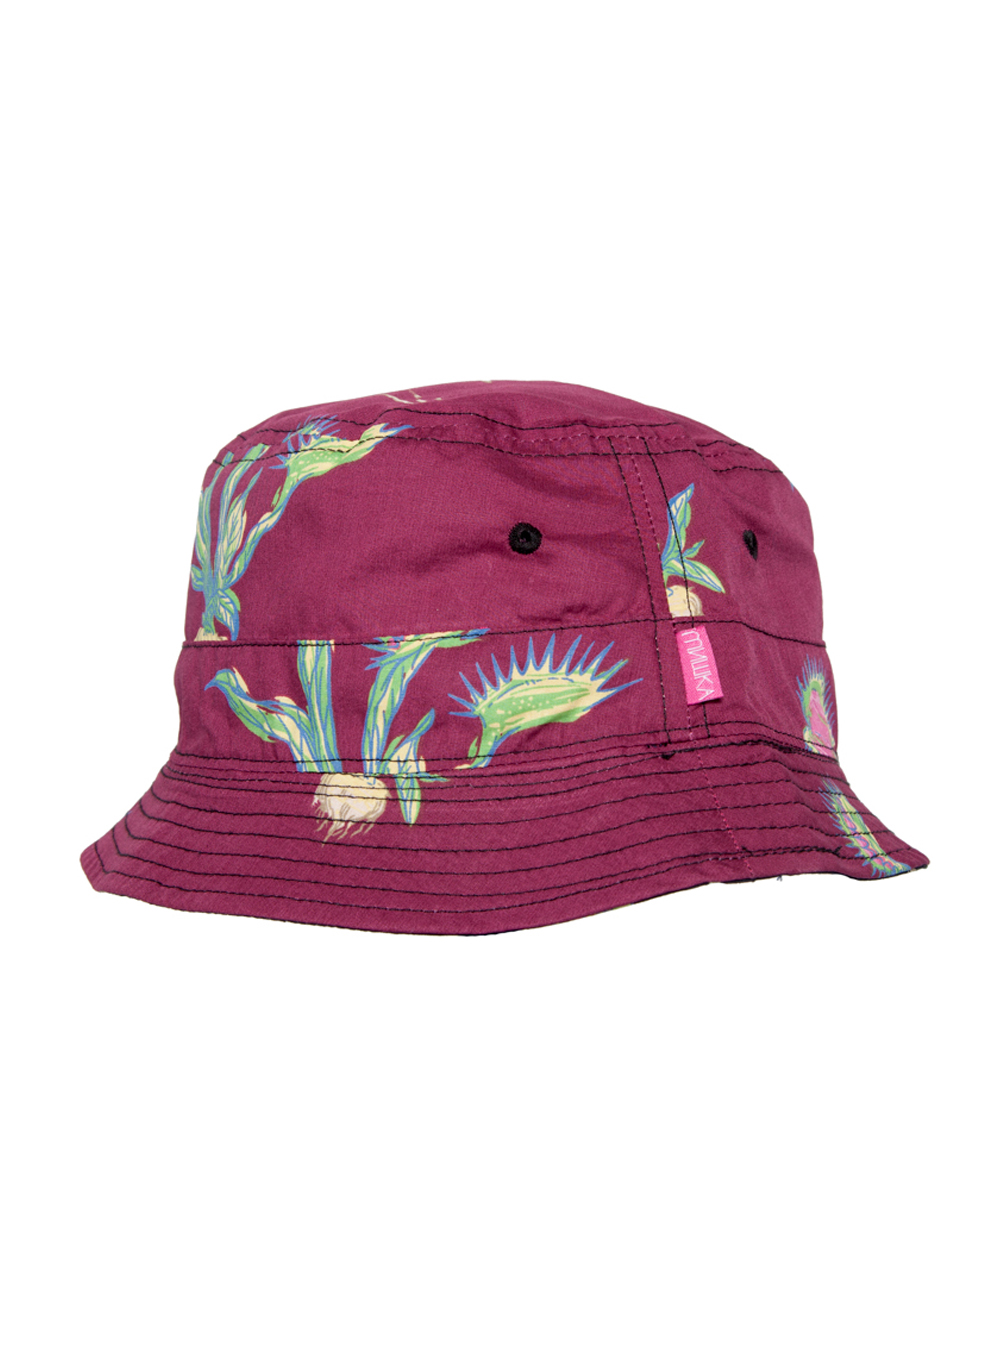 Carnivore Reversible Bucket Hat